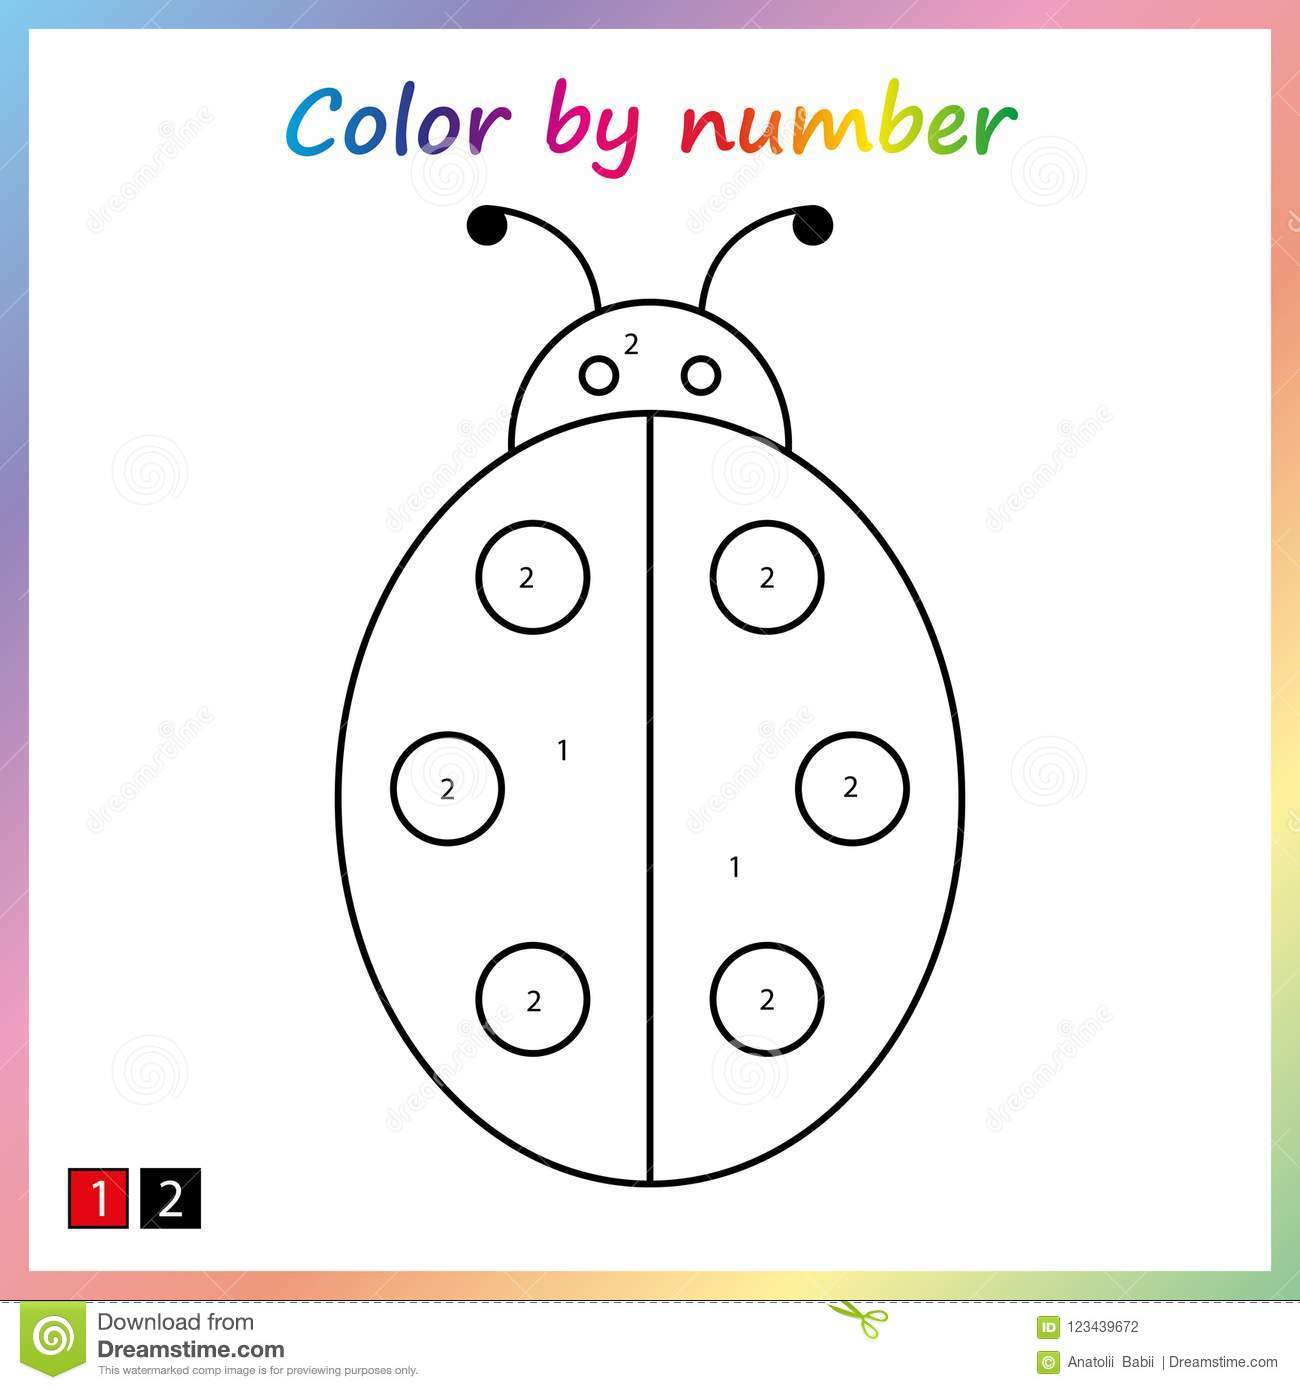 worksheet for education painting page color by numbers game for preschool kids stock vector. Black Bedroom Furniture Sets. Home Design Ideas